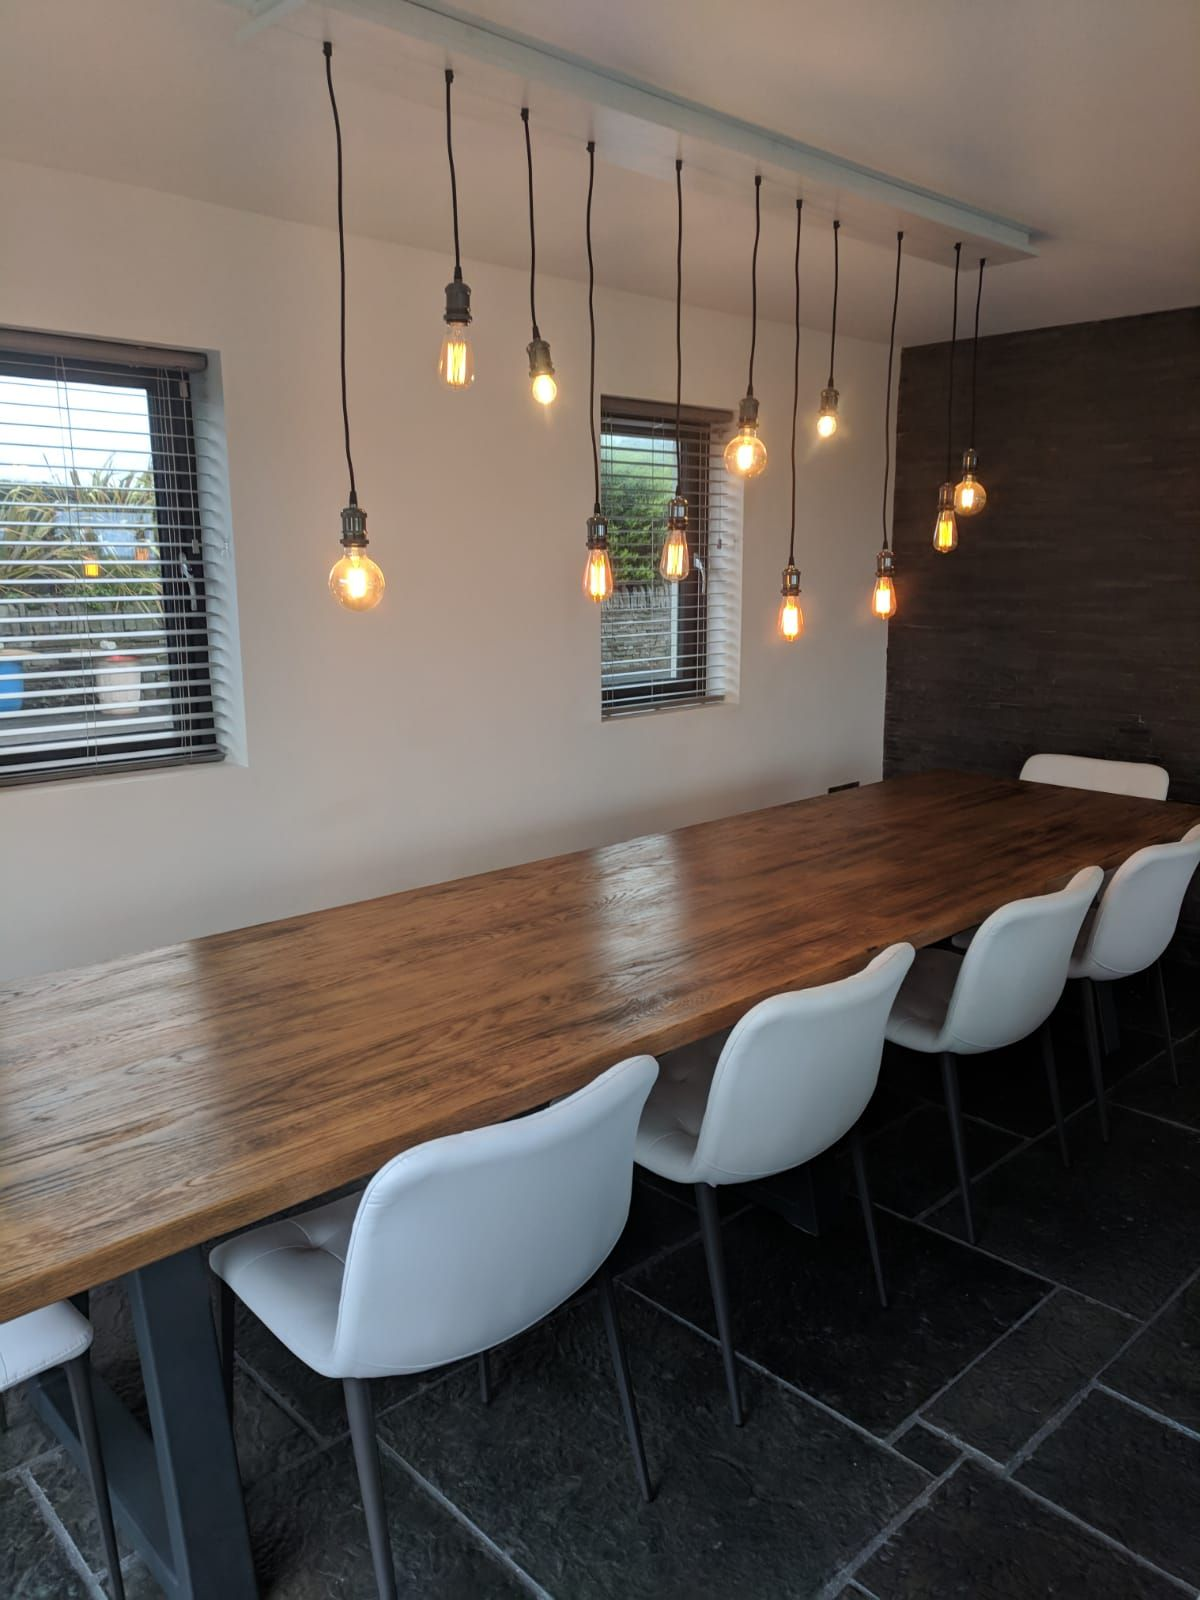 into the west rustic furniture it was into the west and beautiful lahinch where we delivered one of our longest tables to date 13ft comfortably seating 10 persons